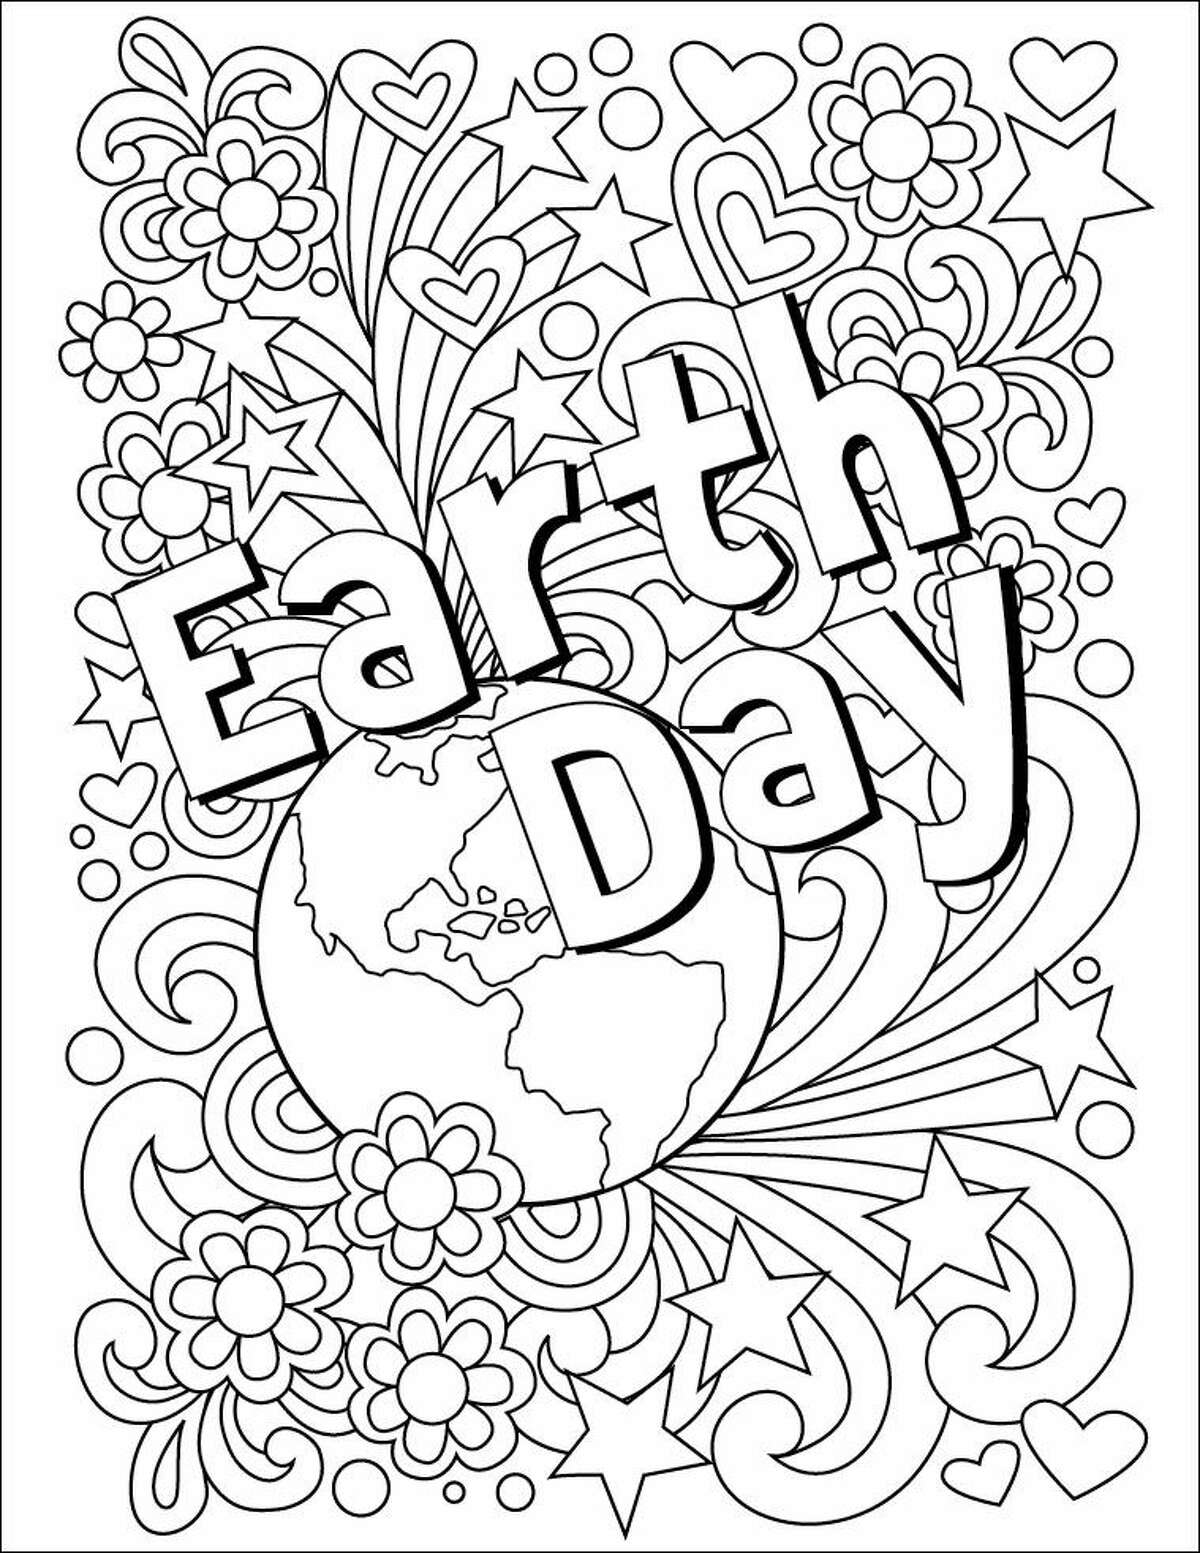 The Hour's EarthDay Coloring Contest - All ages are welcome to color the below Earth Day design in celebration of the day. The winner will run on the front page of the EarthDay edition of The Hour. Simply, clip this design out of the paper and mail it to: The Hour Coloring Contest, 1 Selleck Street, Norwalk, CT 06855. Entries must be received by April 18, 2016.